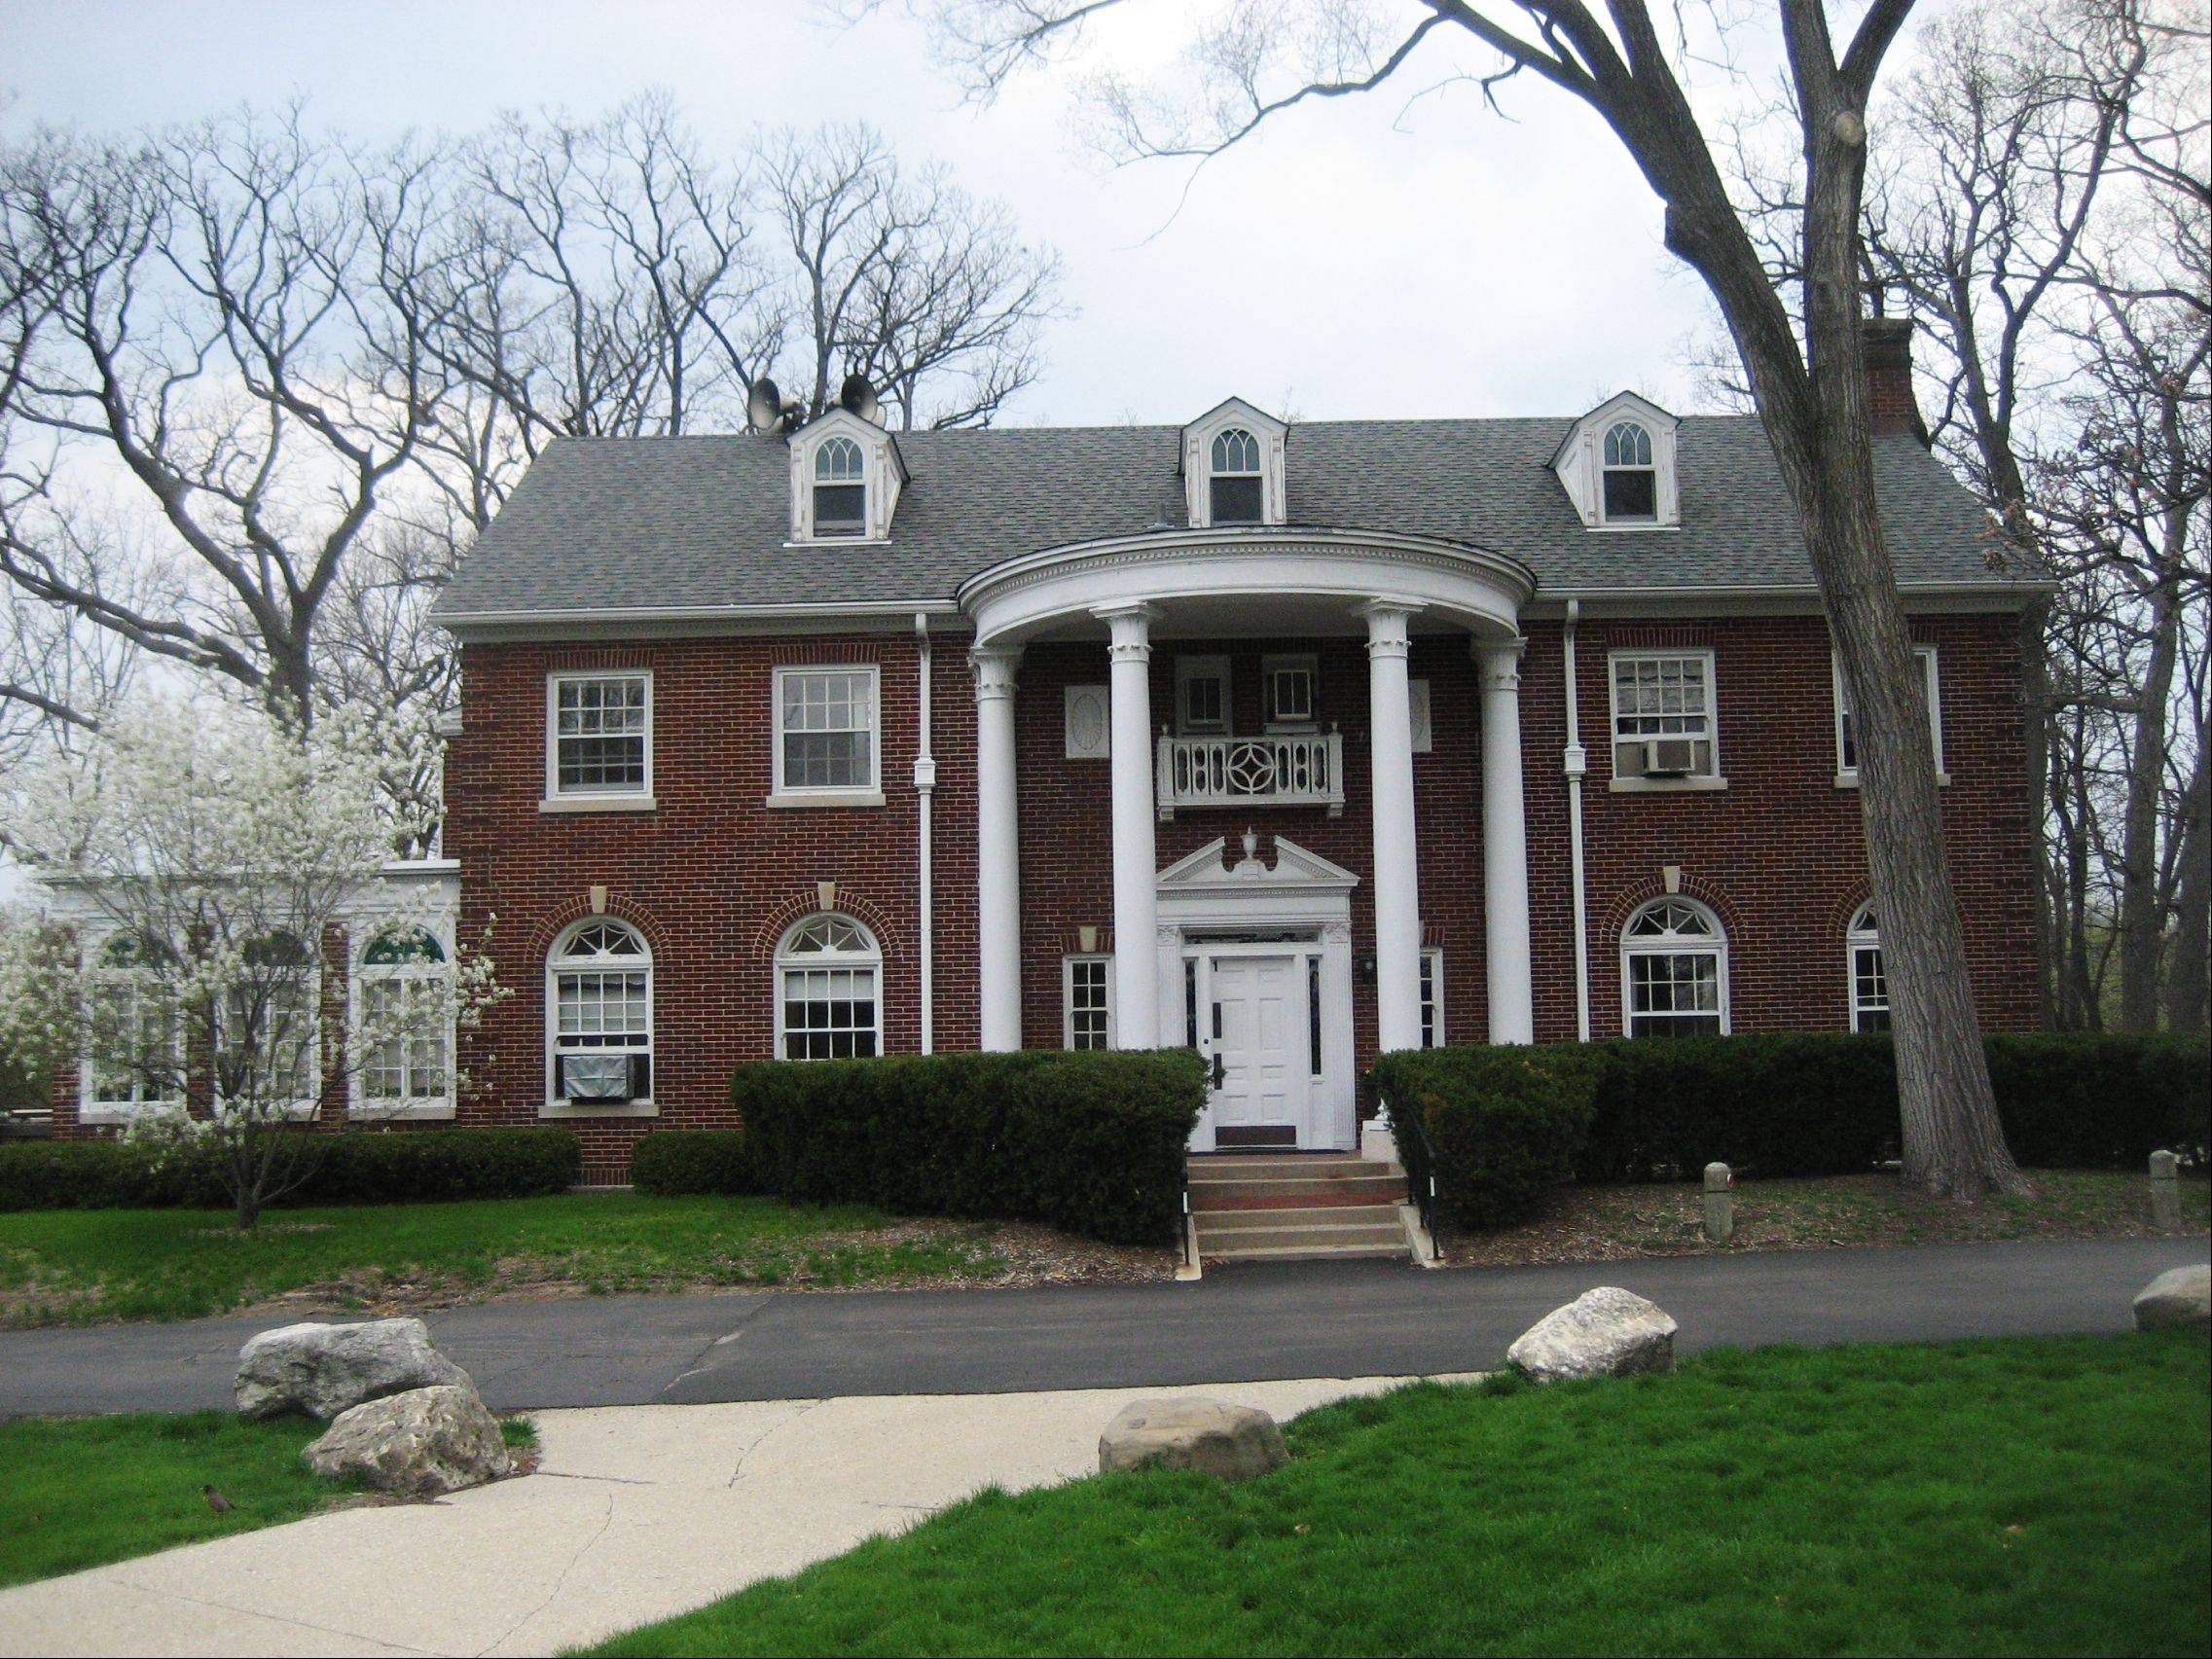 The Harm Weber Building at Judson University in Elgin will be featured on Saturday�s house tour.